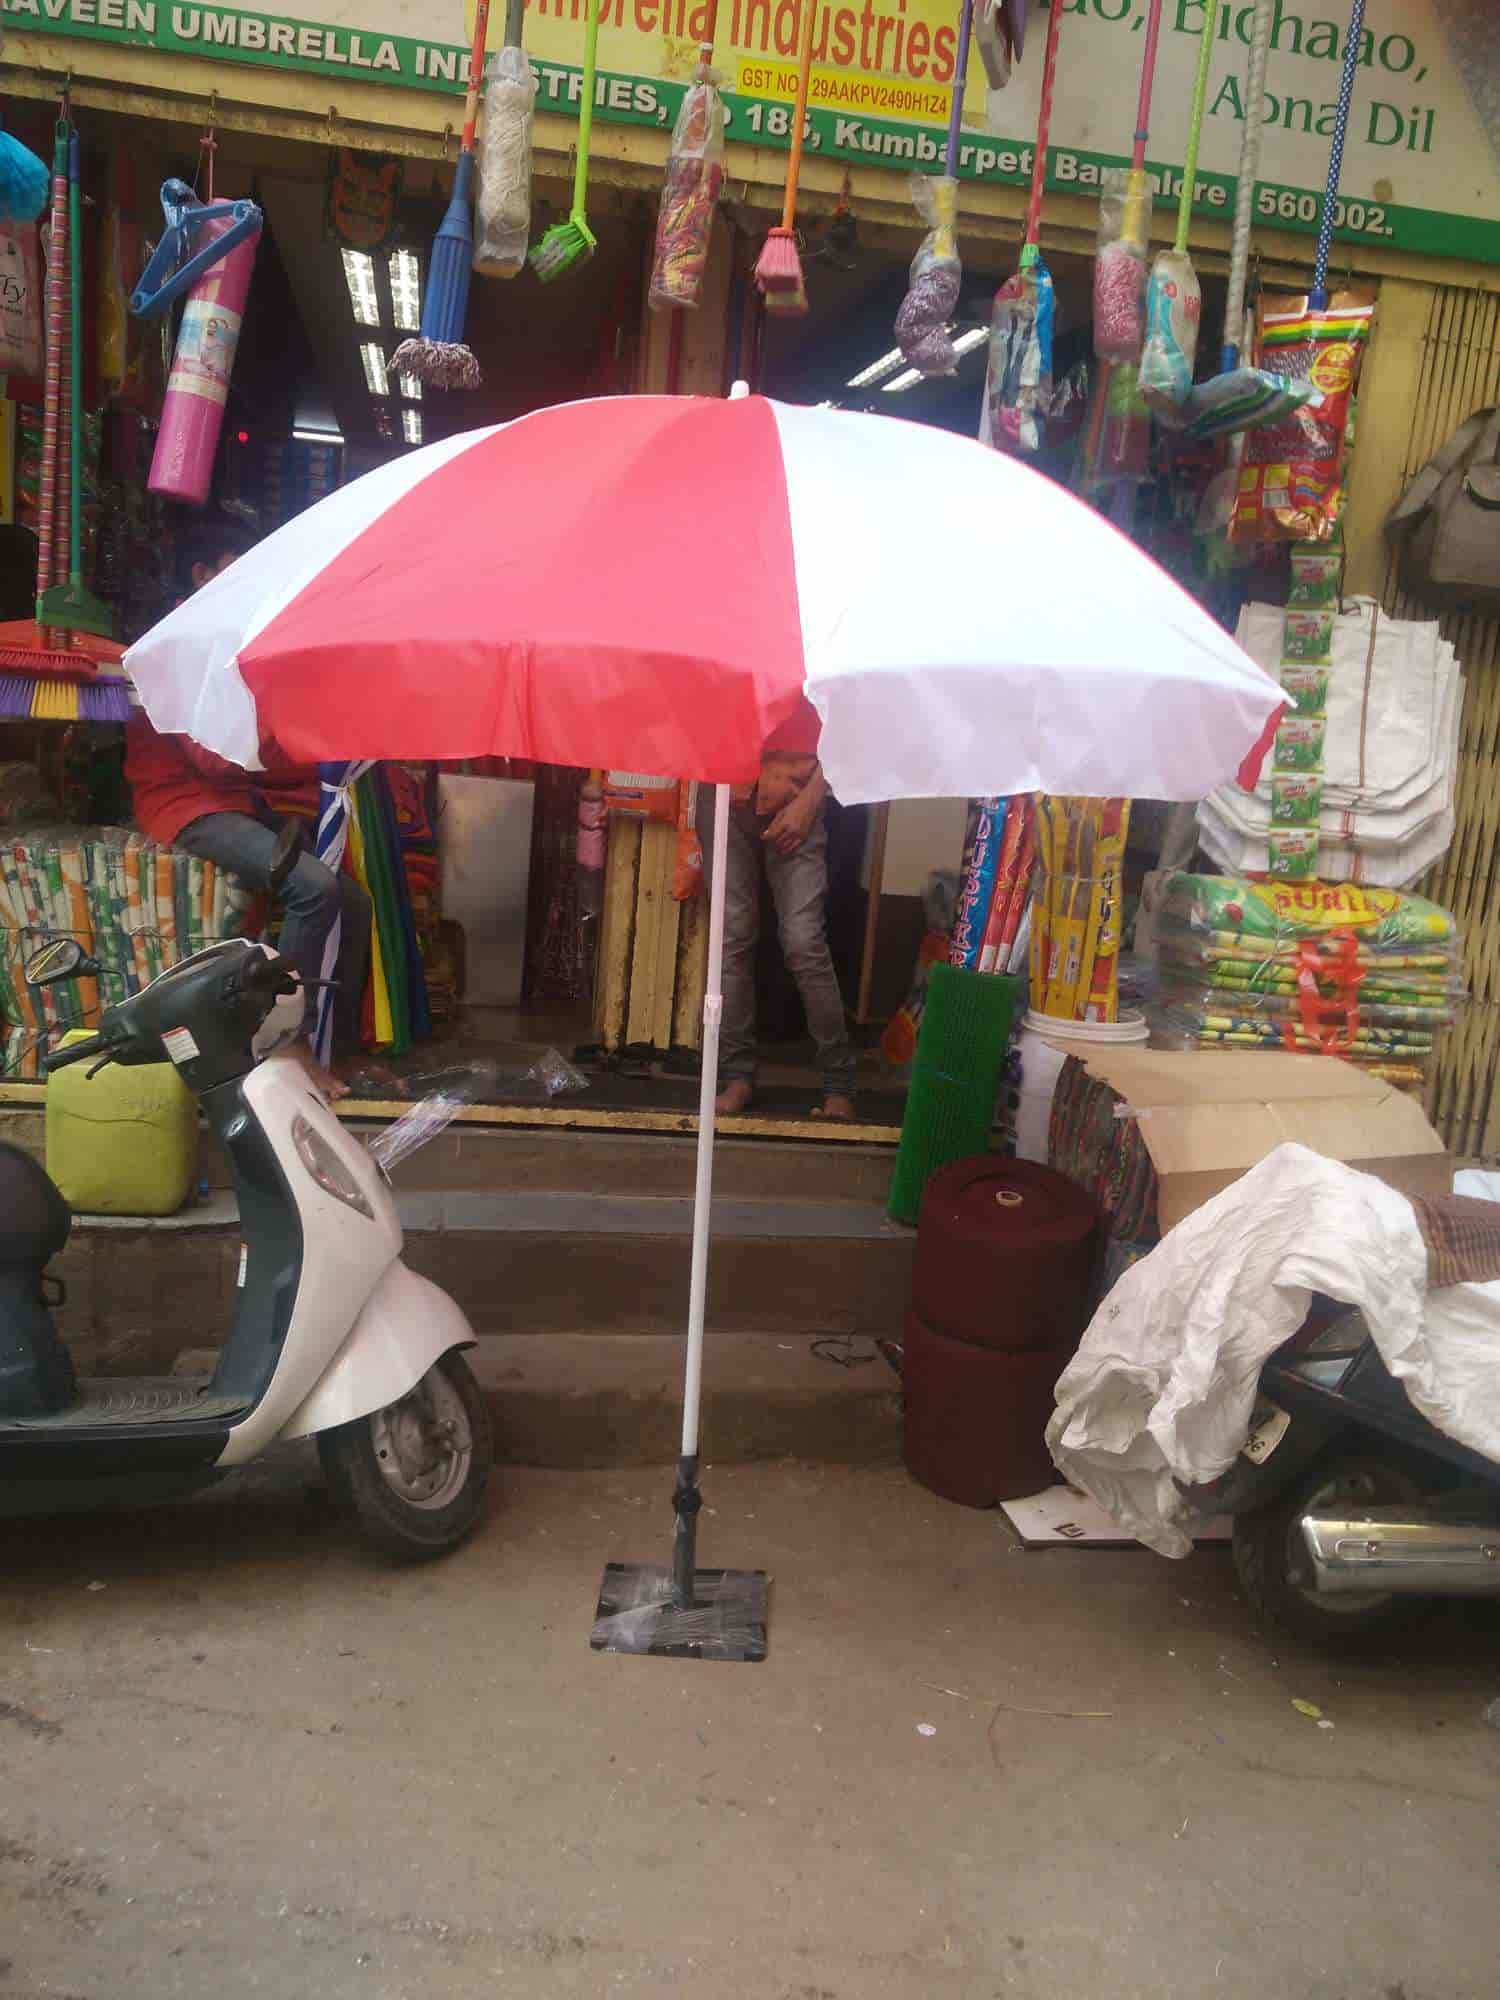 77621507dcfe9 ... Praveen Umbrella Industries Photos, Kumbarpet Road, Bangalore - Umbrella  Dealers ...